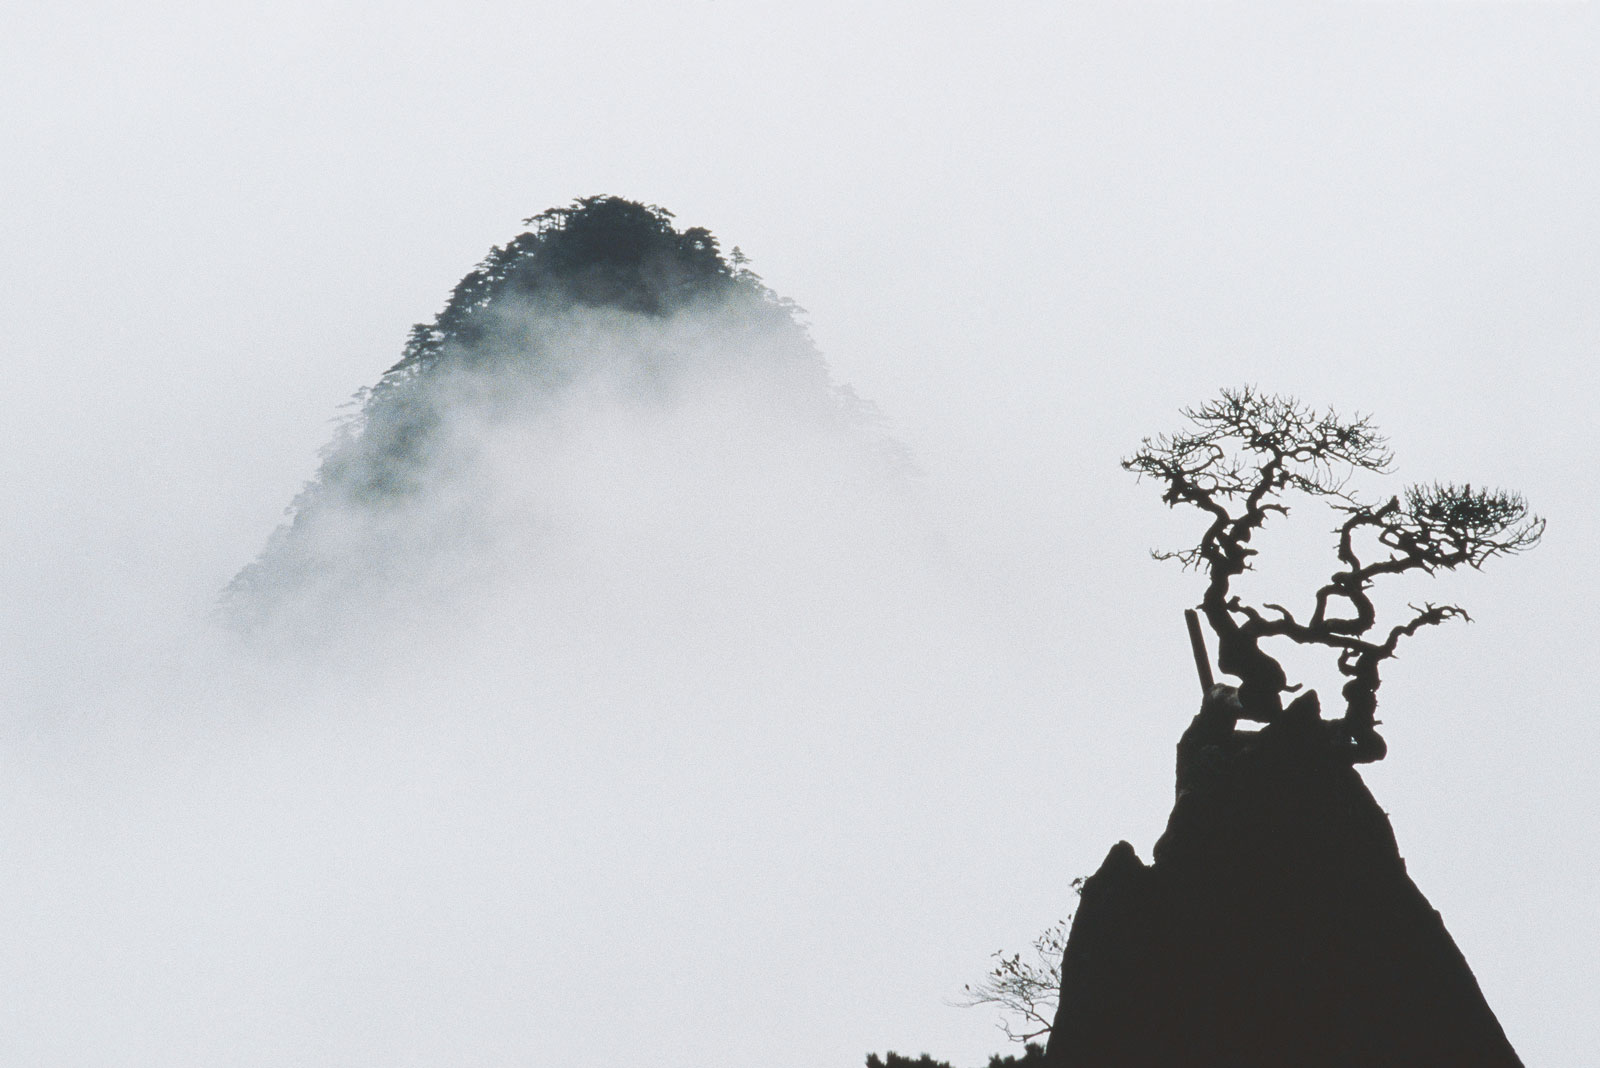 stark black and white image of a tree and mountain almost fully obscured by fog